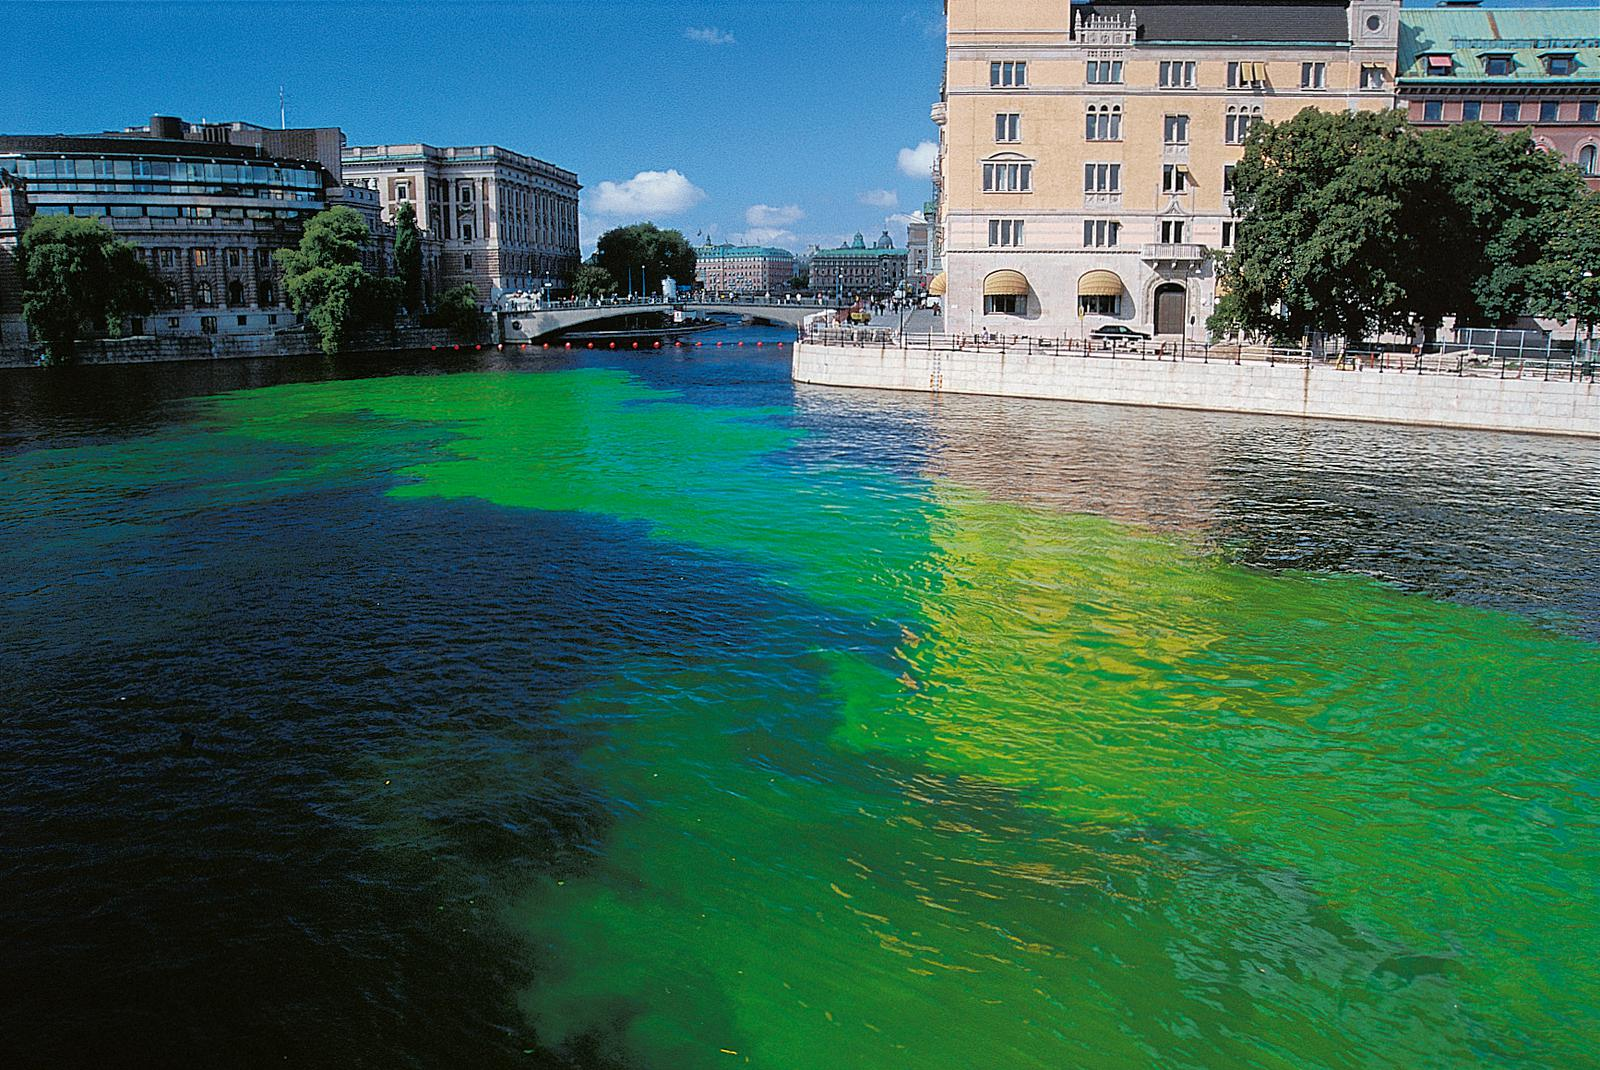 Green River Project, 2000, by Olafur Eliasson, uranine and water, dimensions variableStrömmen waterway, Stockholm. As reproduced in Chromaphilia